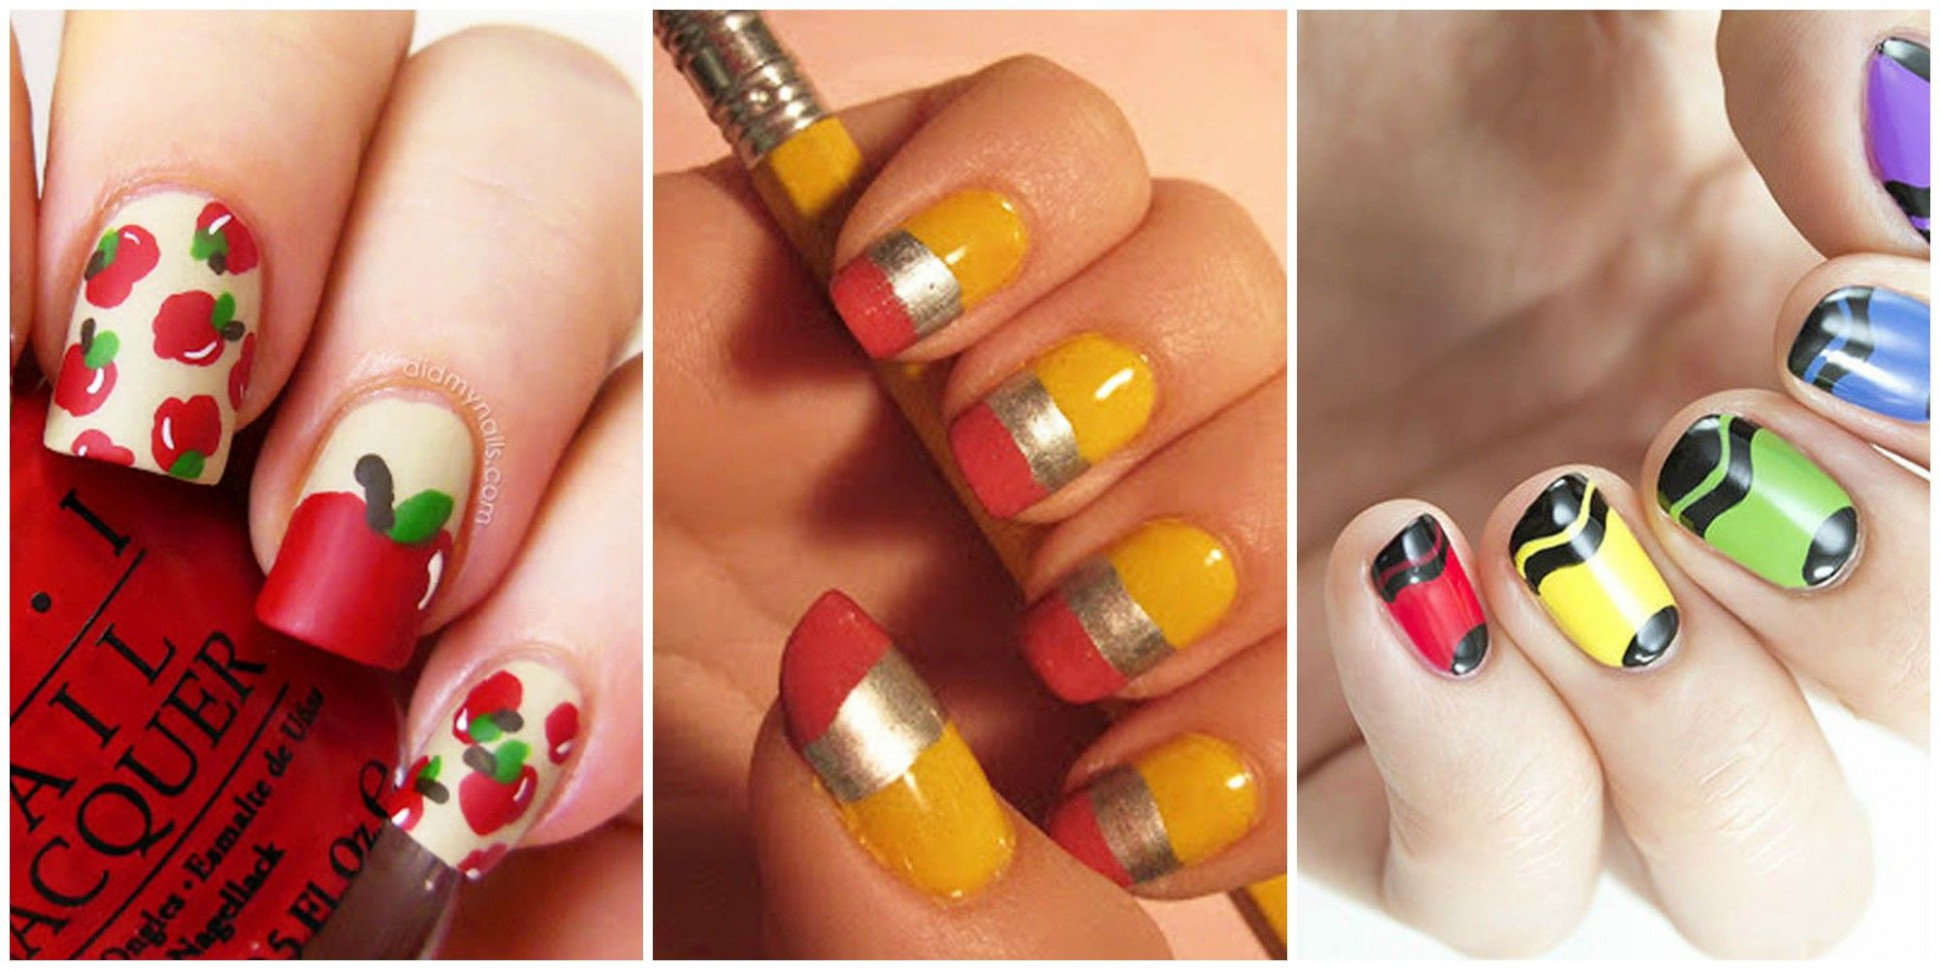 11 Cute Back-to-School Nails - Best Nail Art Design Ideas for School - Cute Back To School Nails